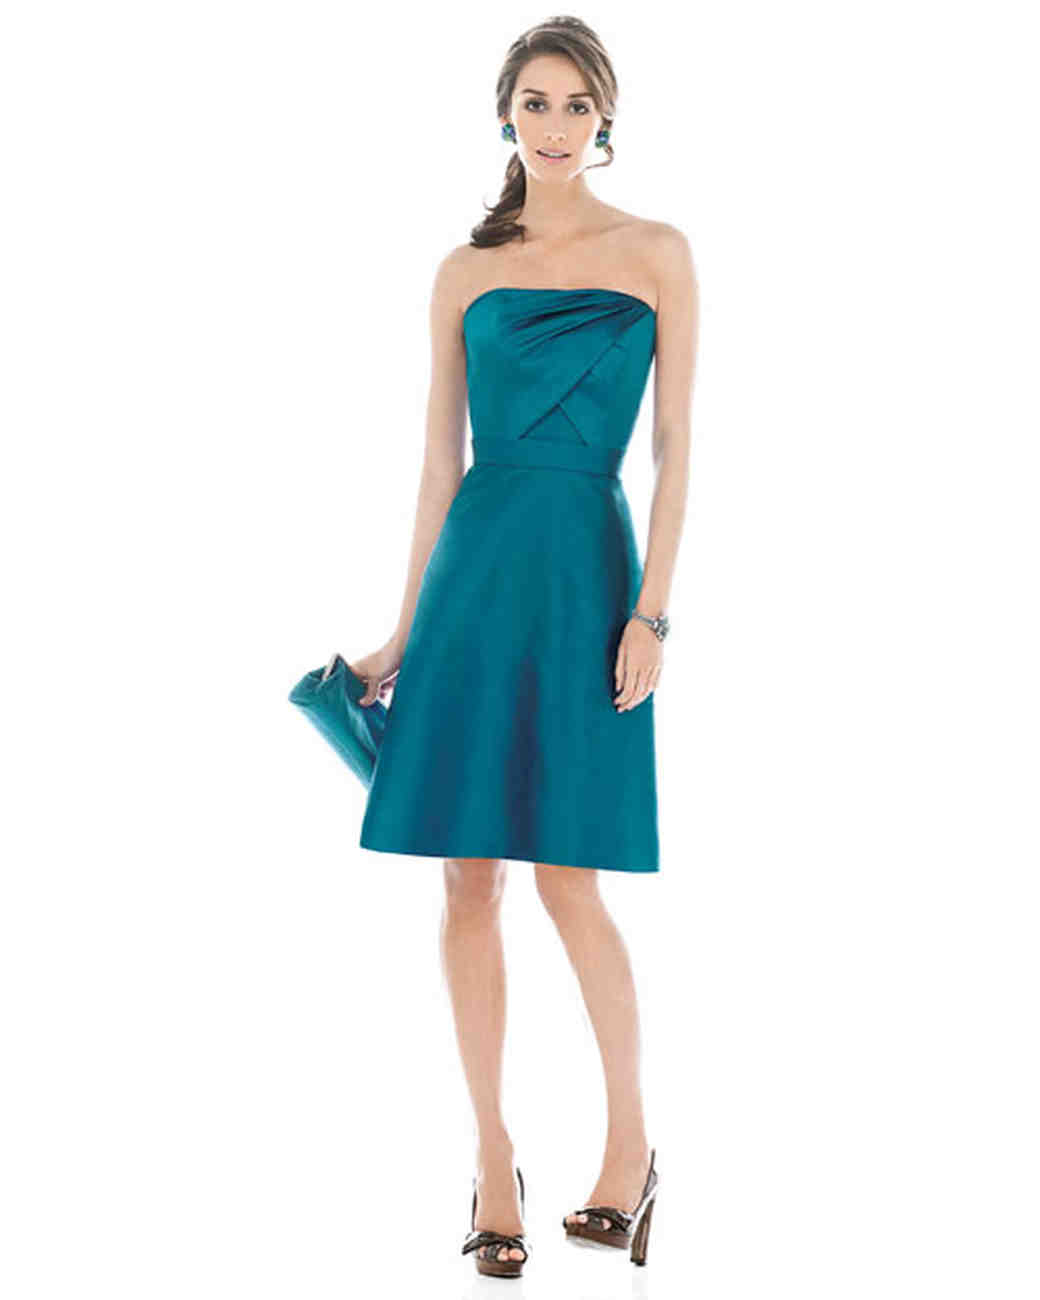 Jewel-Toned Bridesmaid Dresses | Martha Stewart Weddings